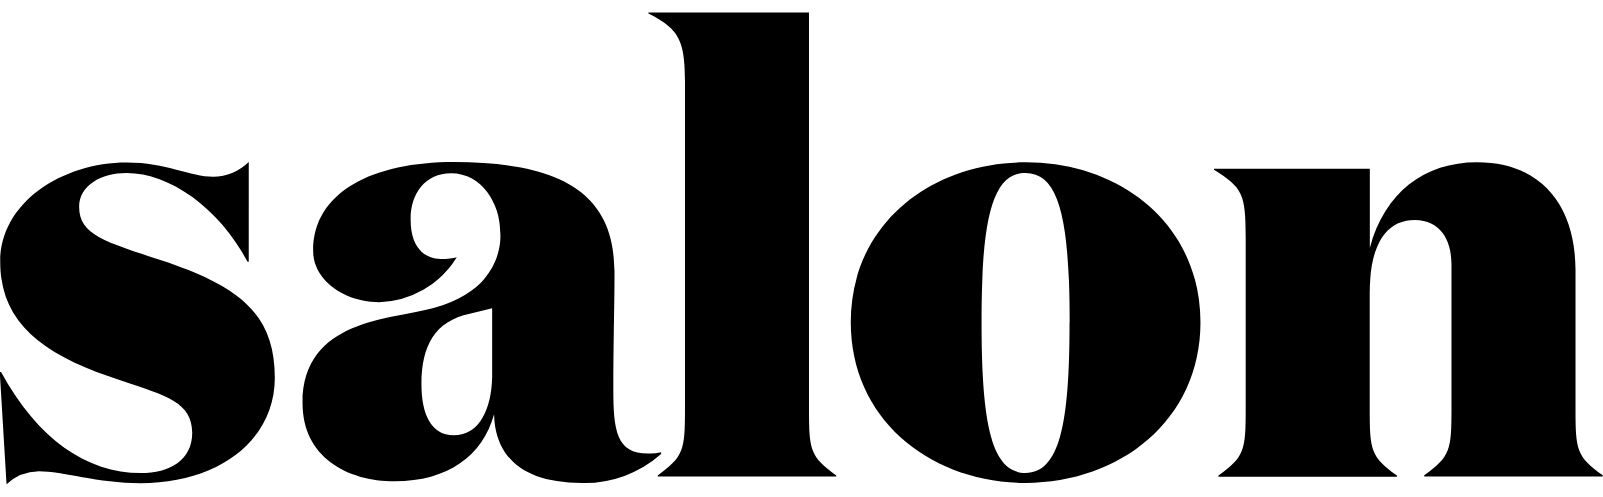 Salon-1.png